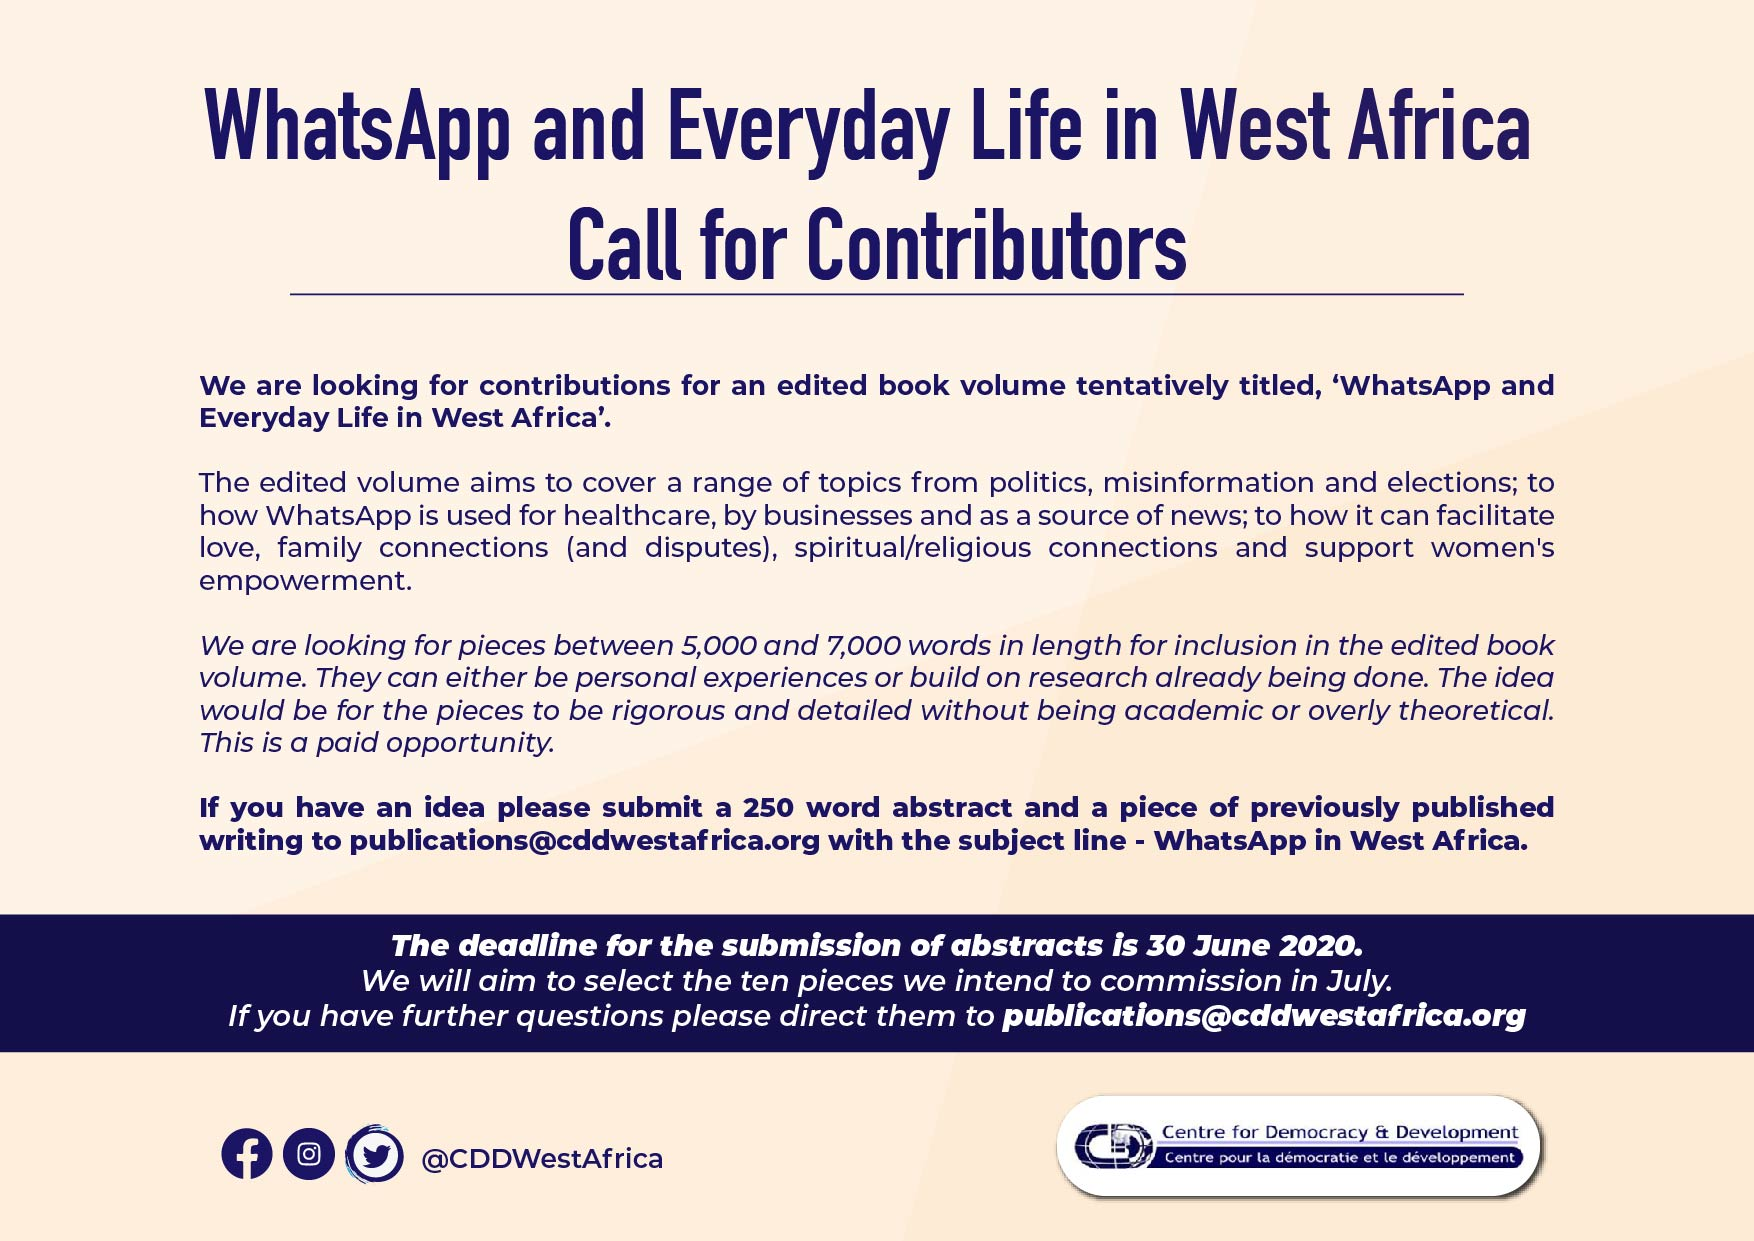 Call for Contributors CDD – WhatsApp and Everyday Life in West Africa